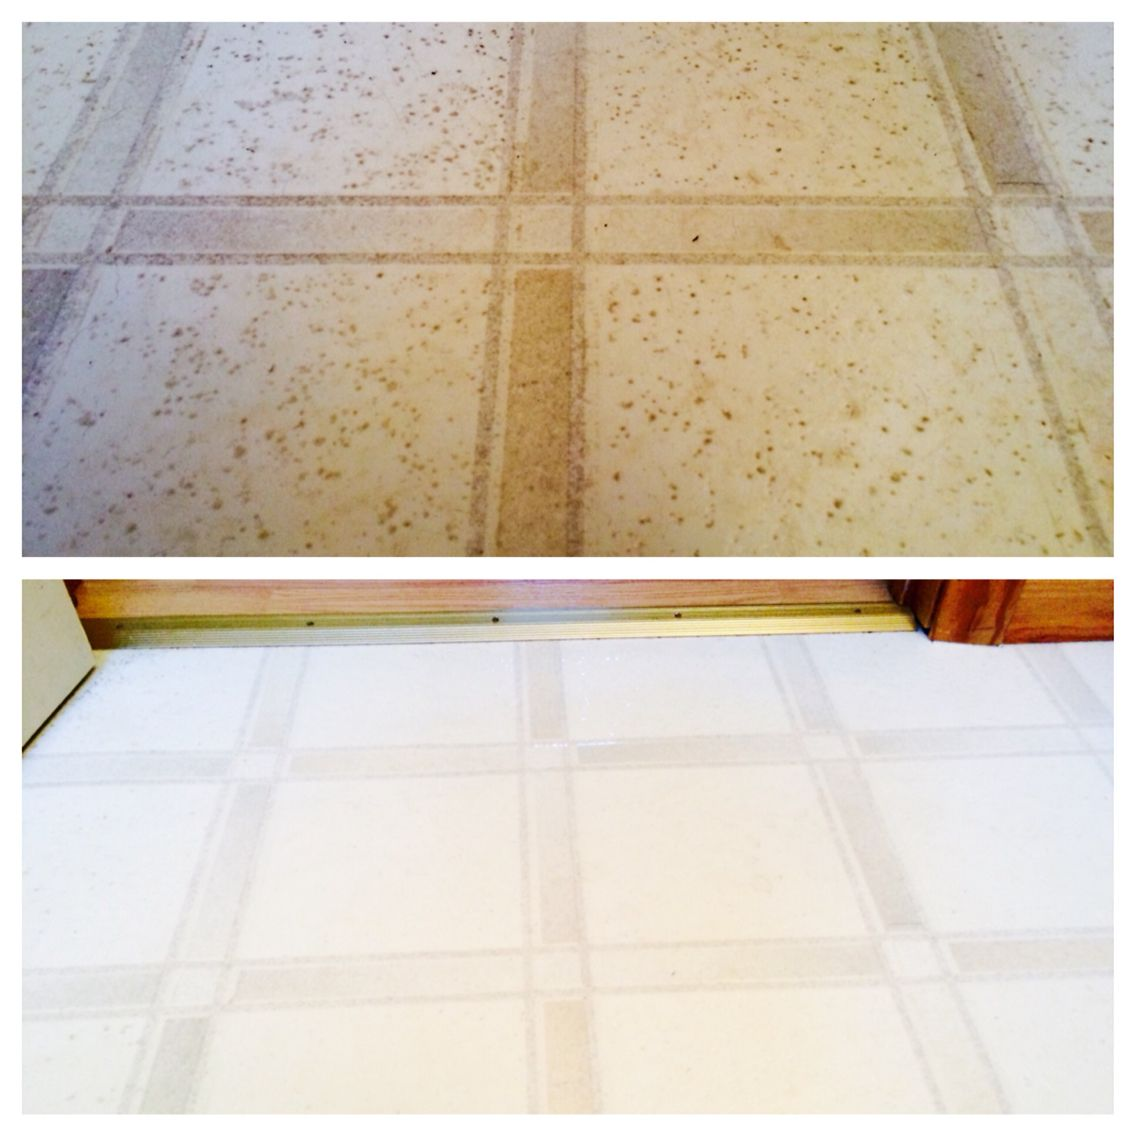 Believe It Or Not The Top Photo Is My Bathroom Floor That